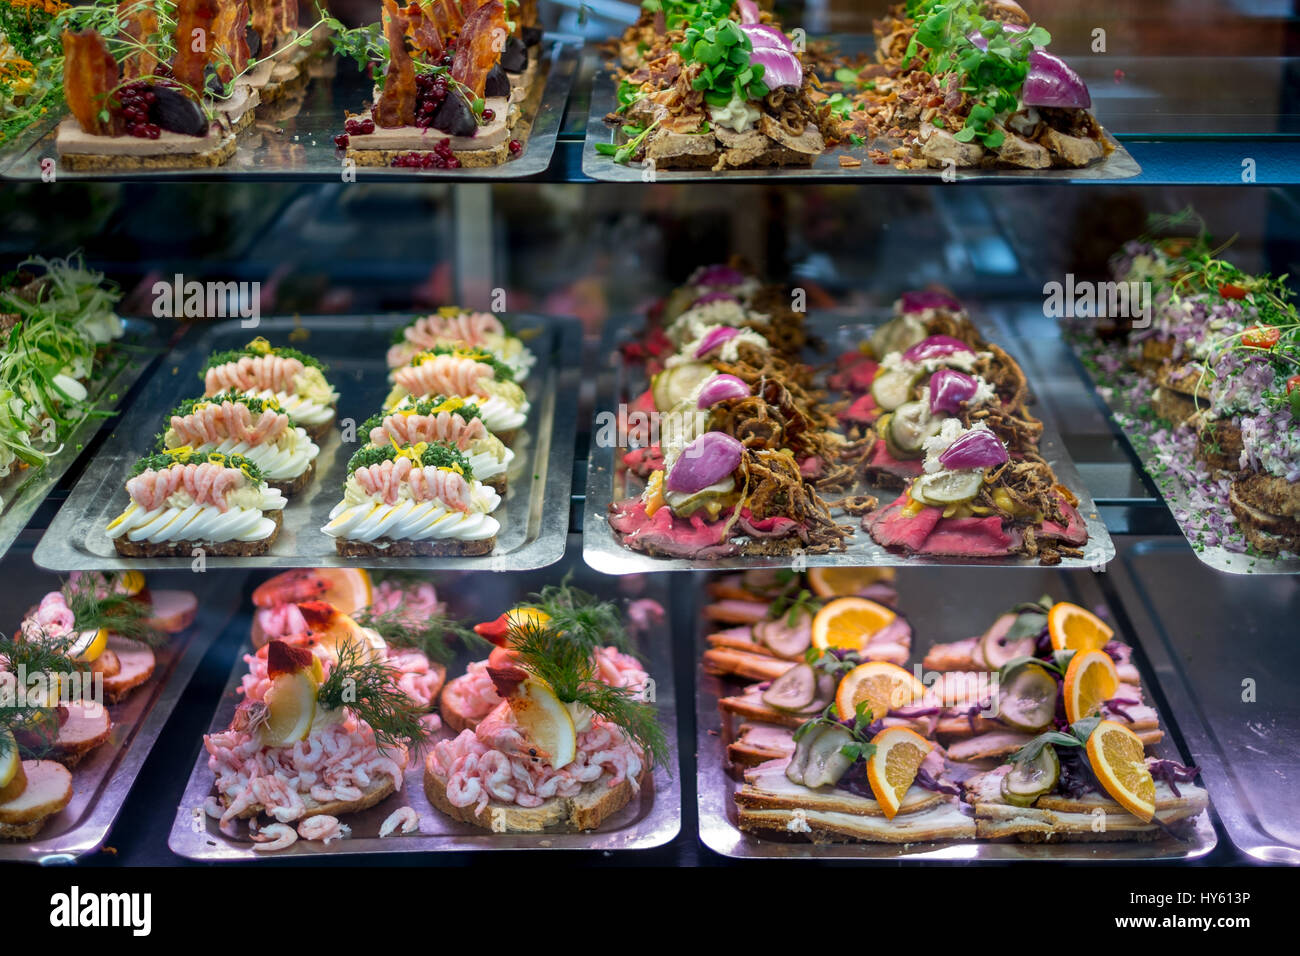 Mouth Watering Display Of Danish Smørrebrød Traditional Open Rye